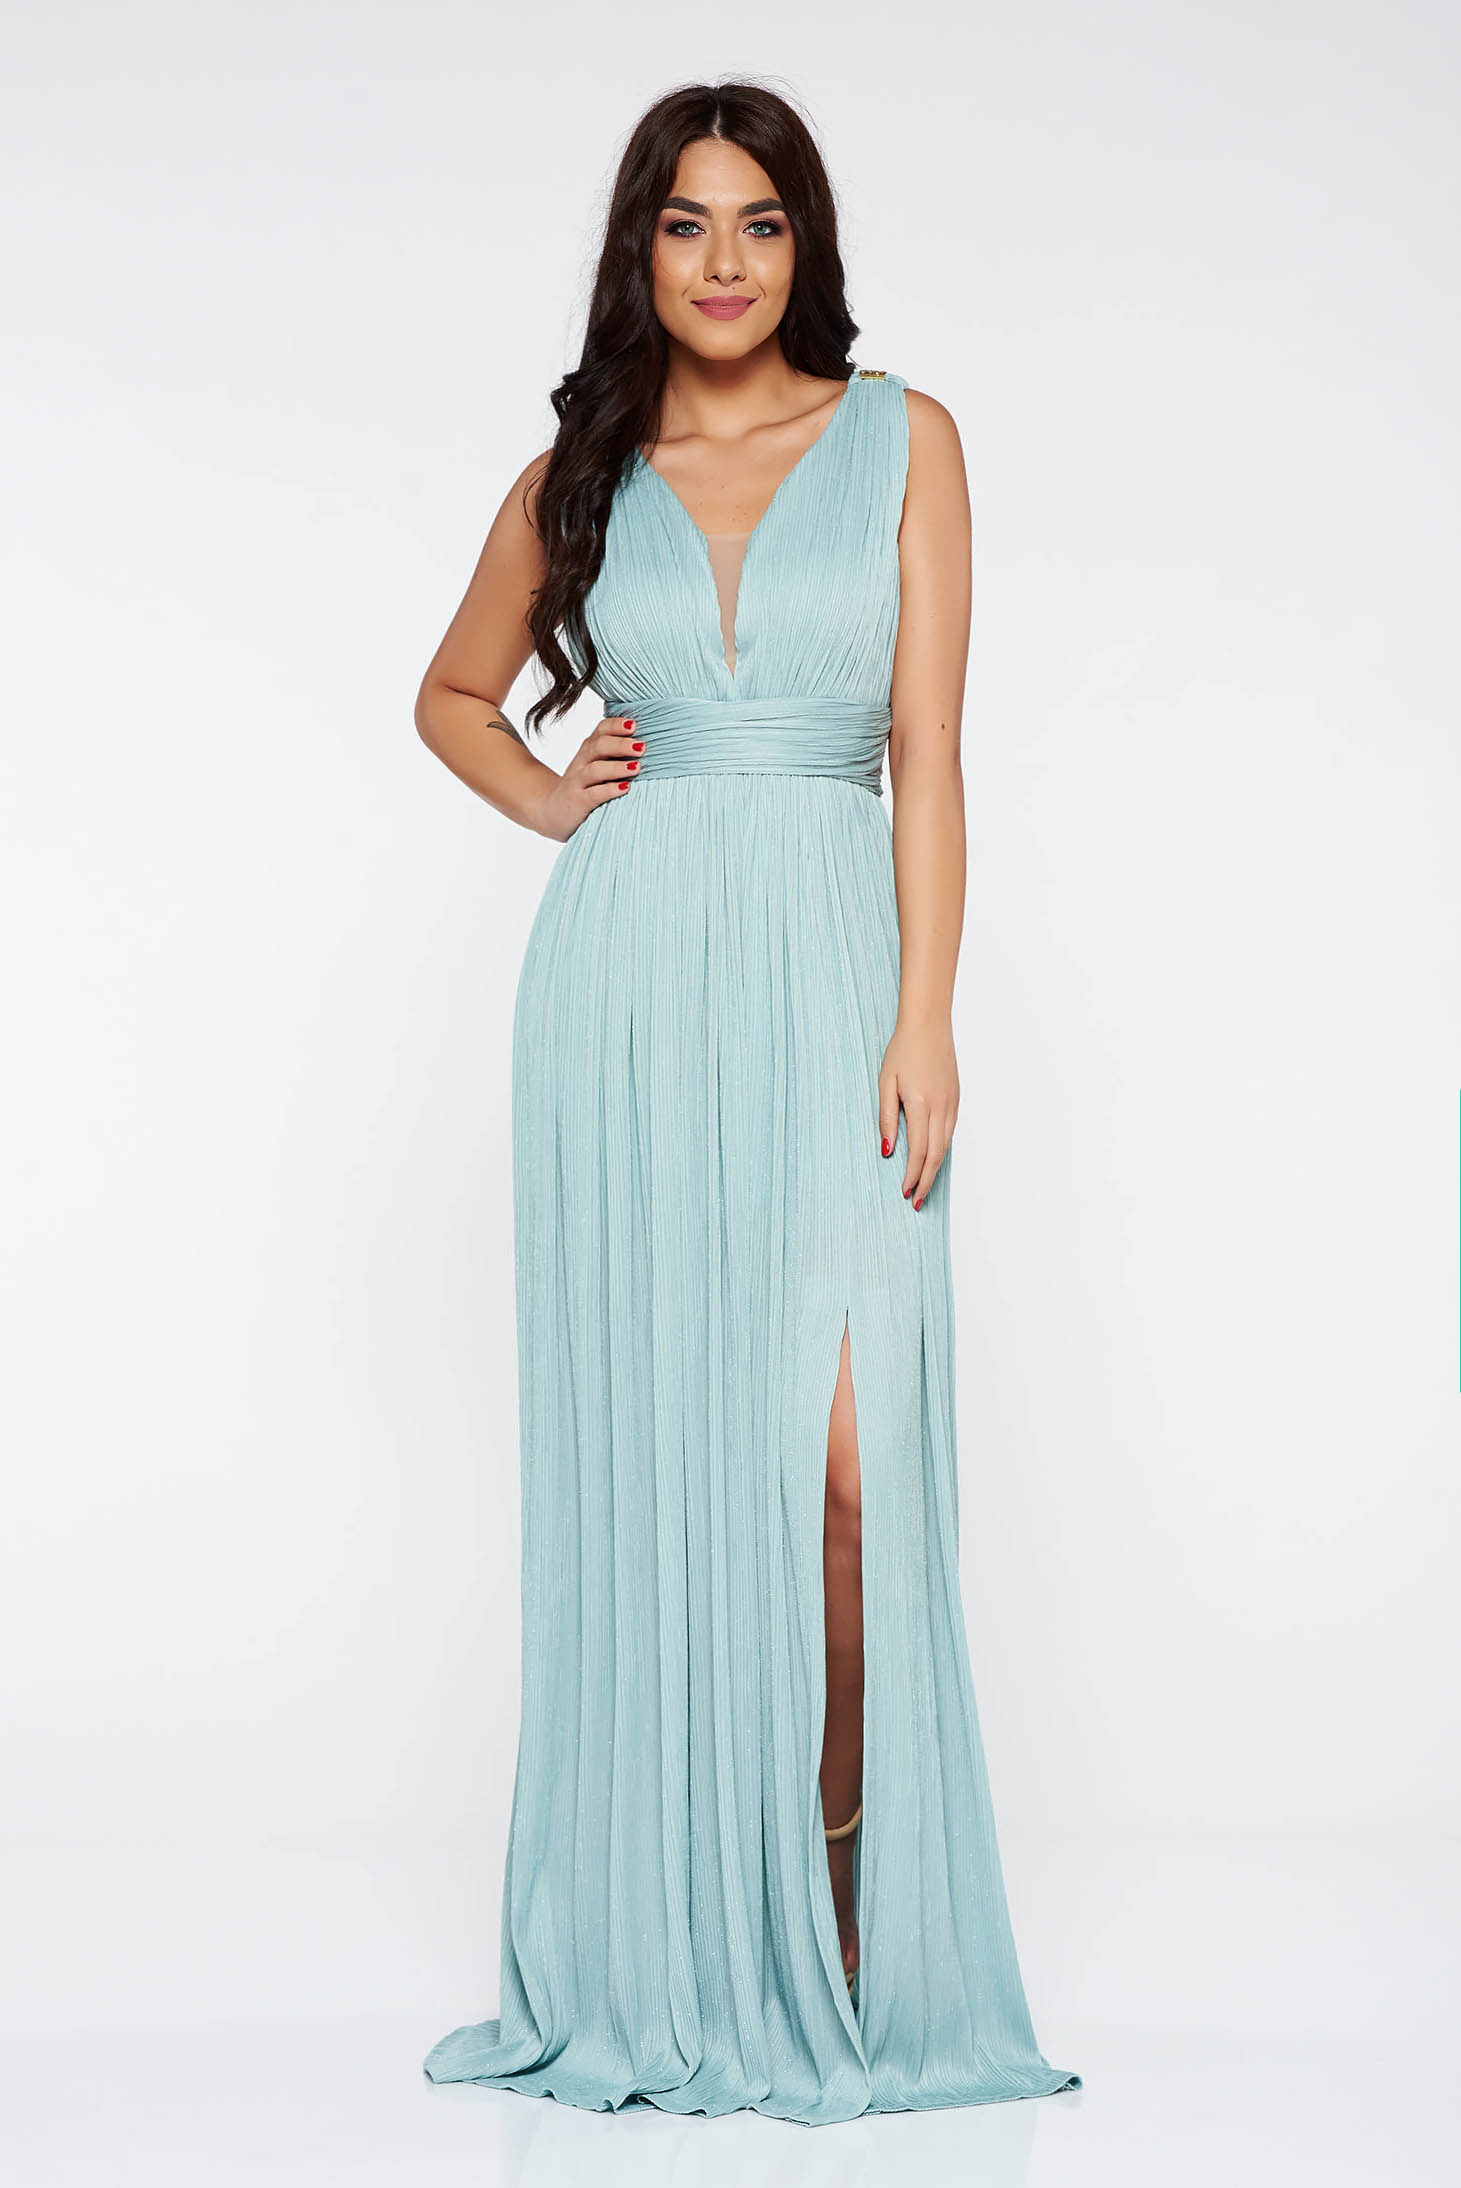 Ladonna Mint Occasional Dress With Inside Lining Shimmery Metallic Fabric